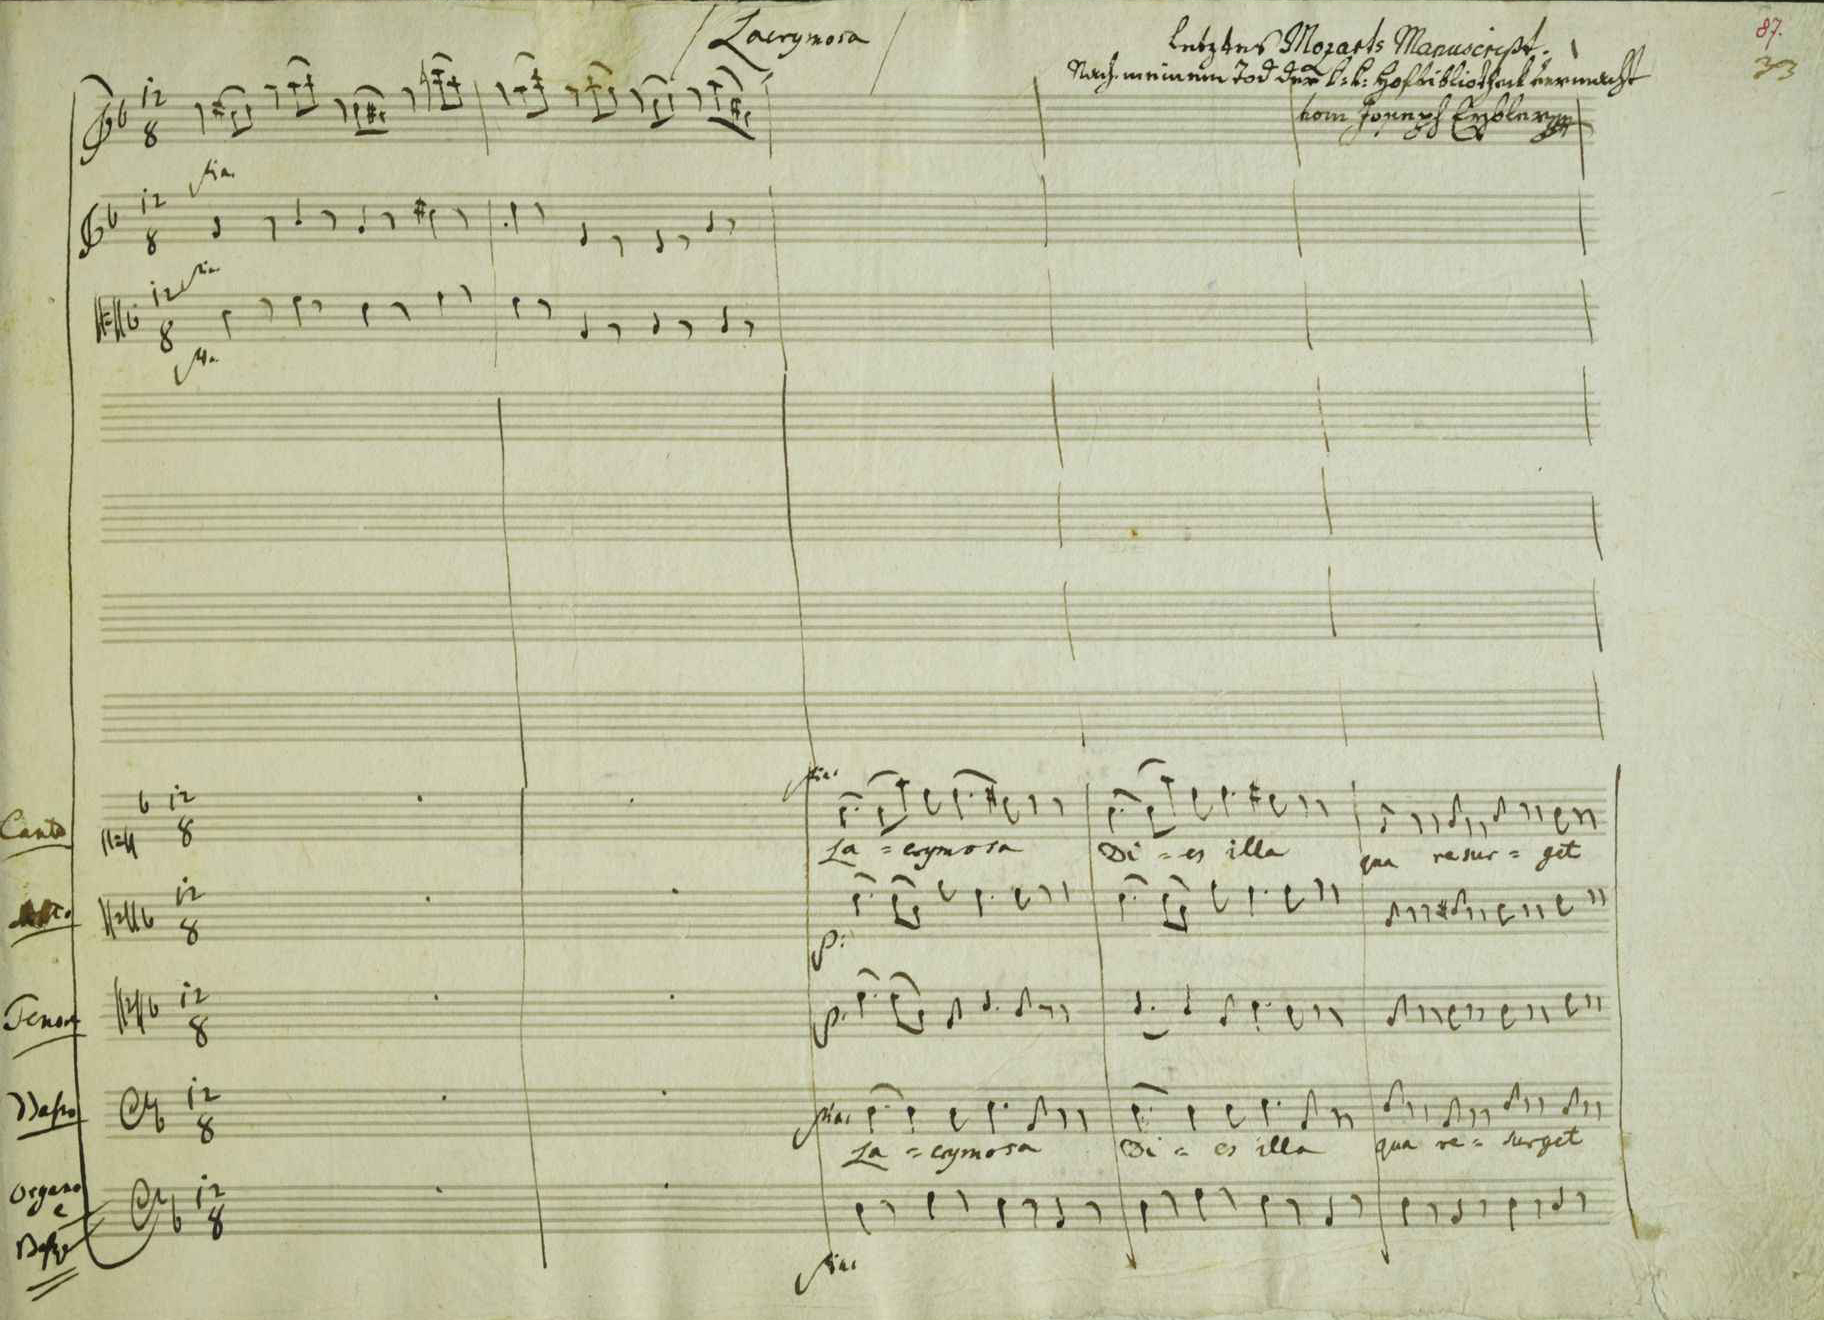 https://upload.wikimedia.org/wikipedia/commons/3/3b/Manuscript_of_the_last_page_of_Requiem.jpg